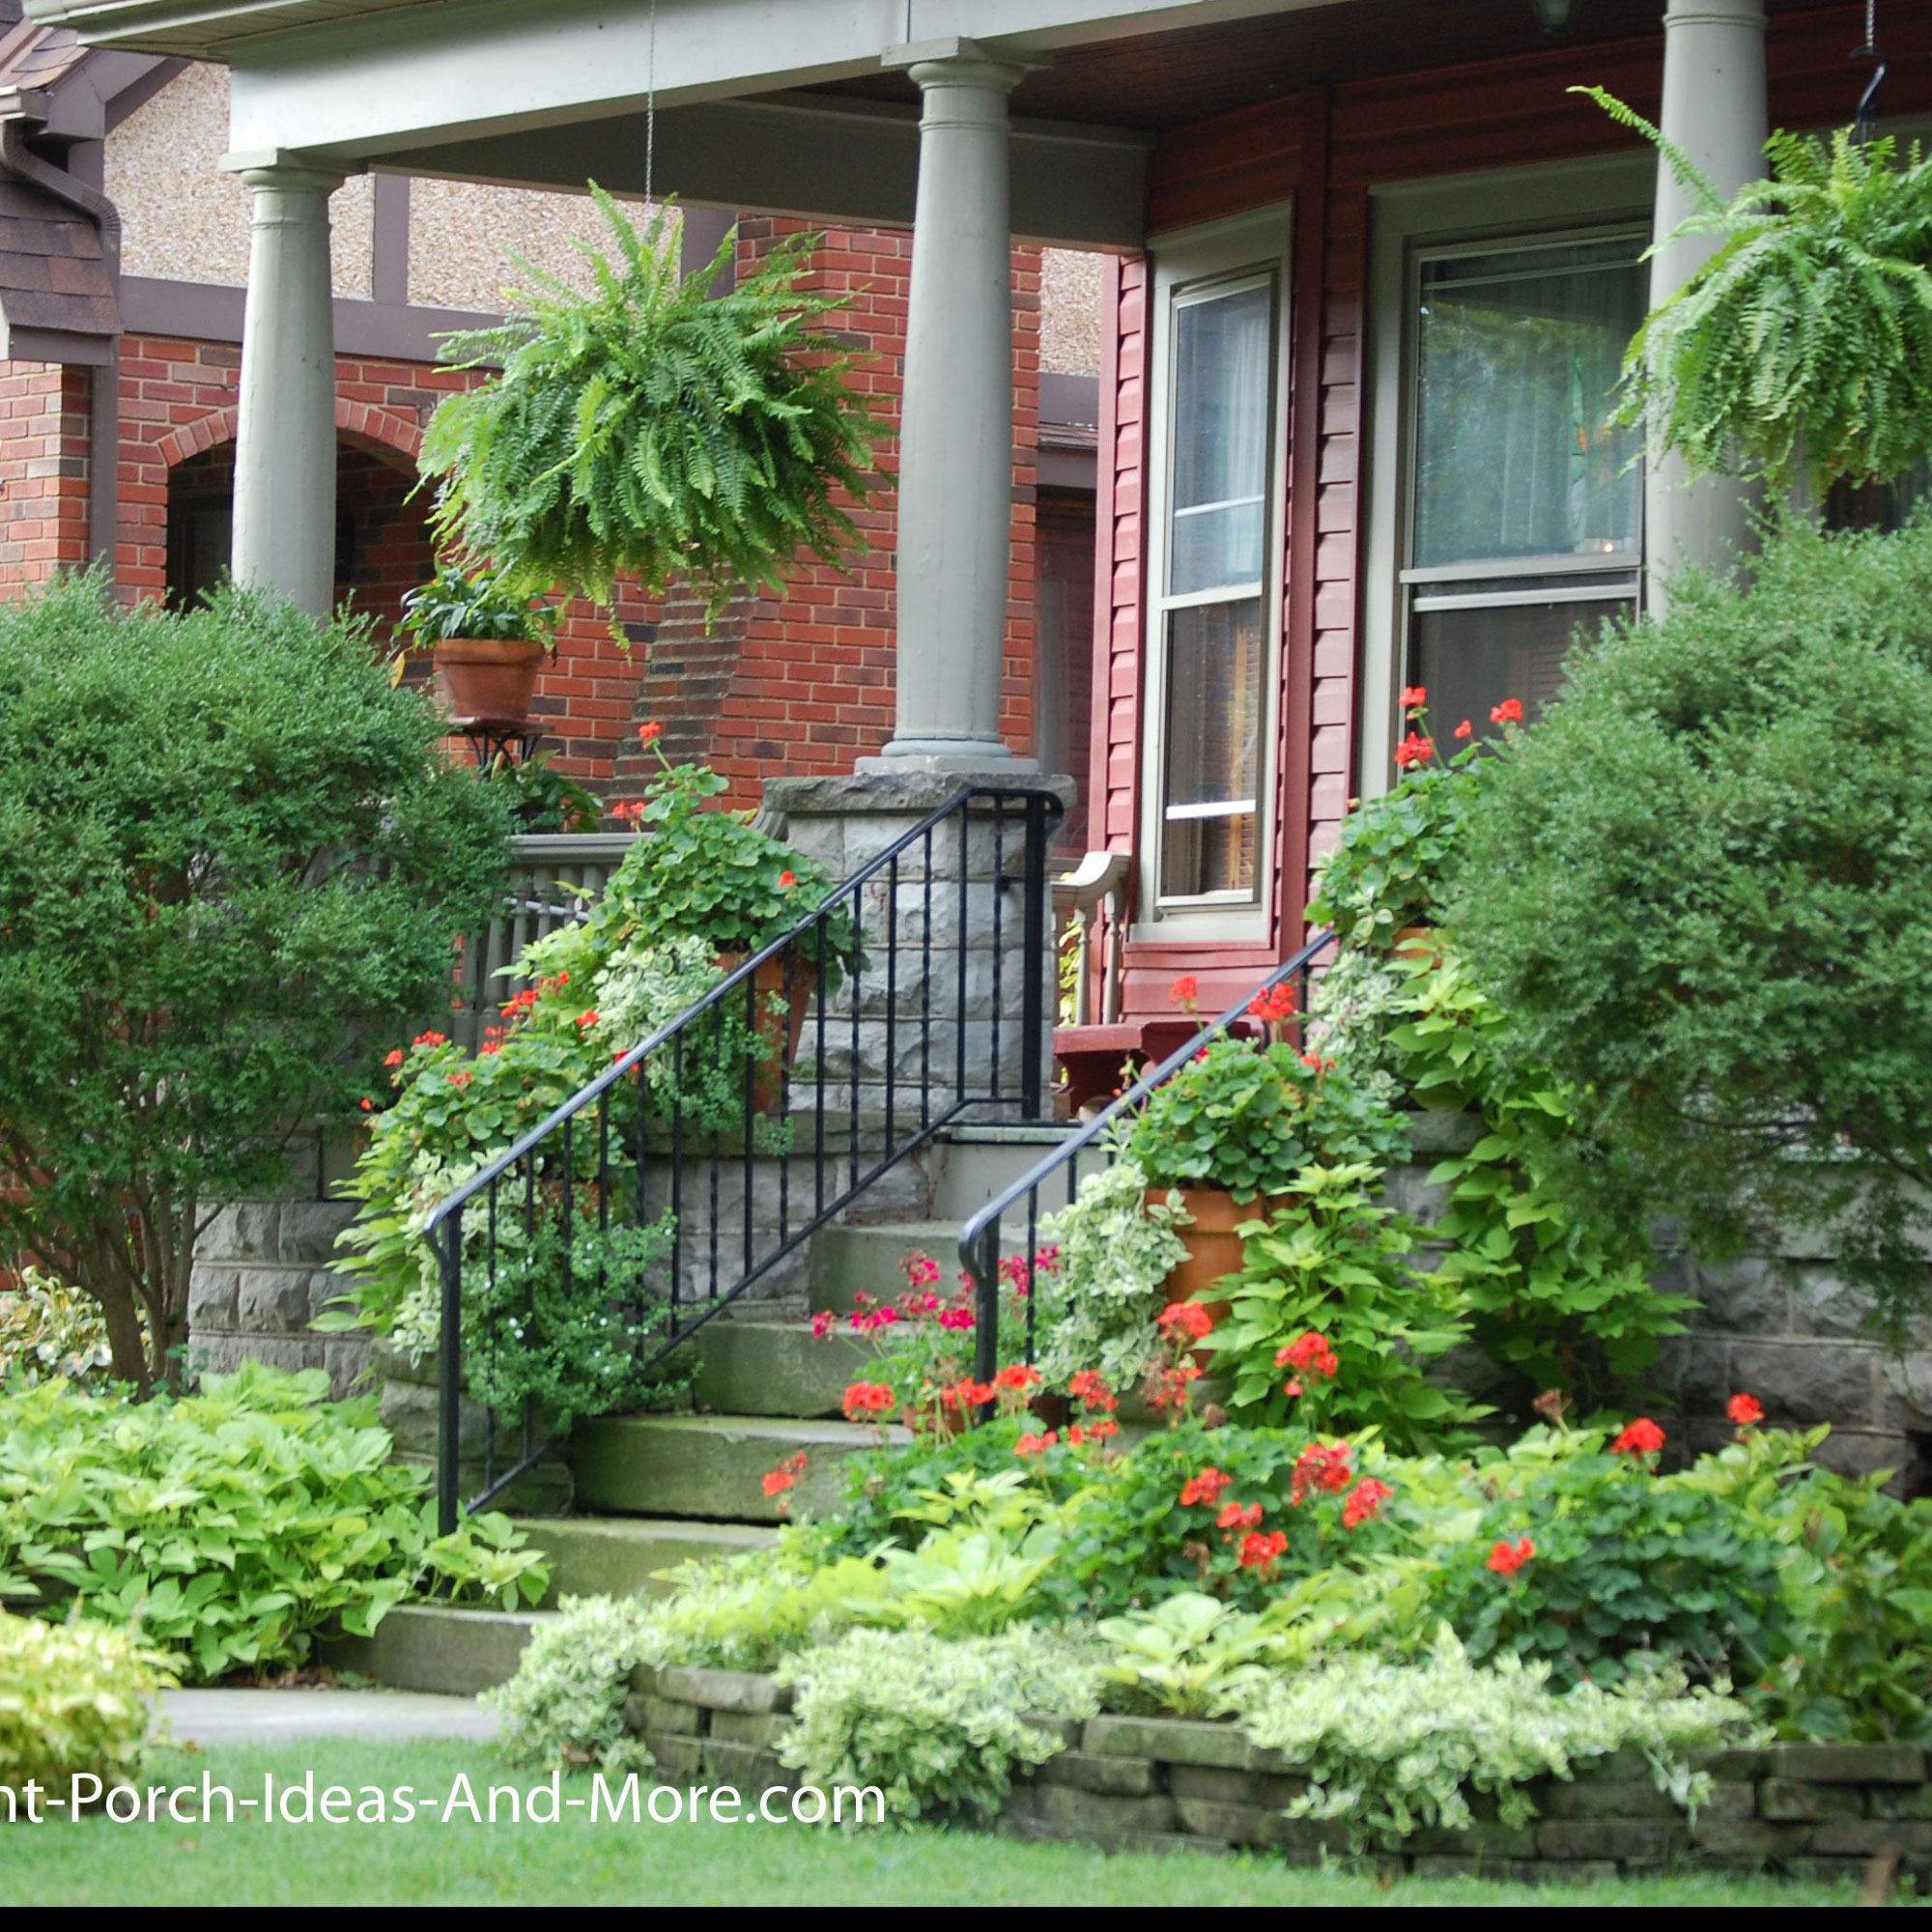 Porch landscaping ideas for your front yard and more for Front lawn design ideas